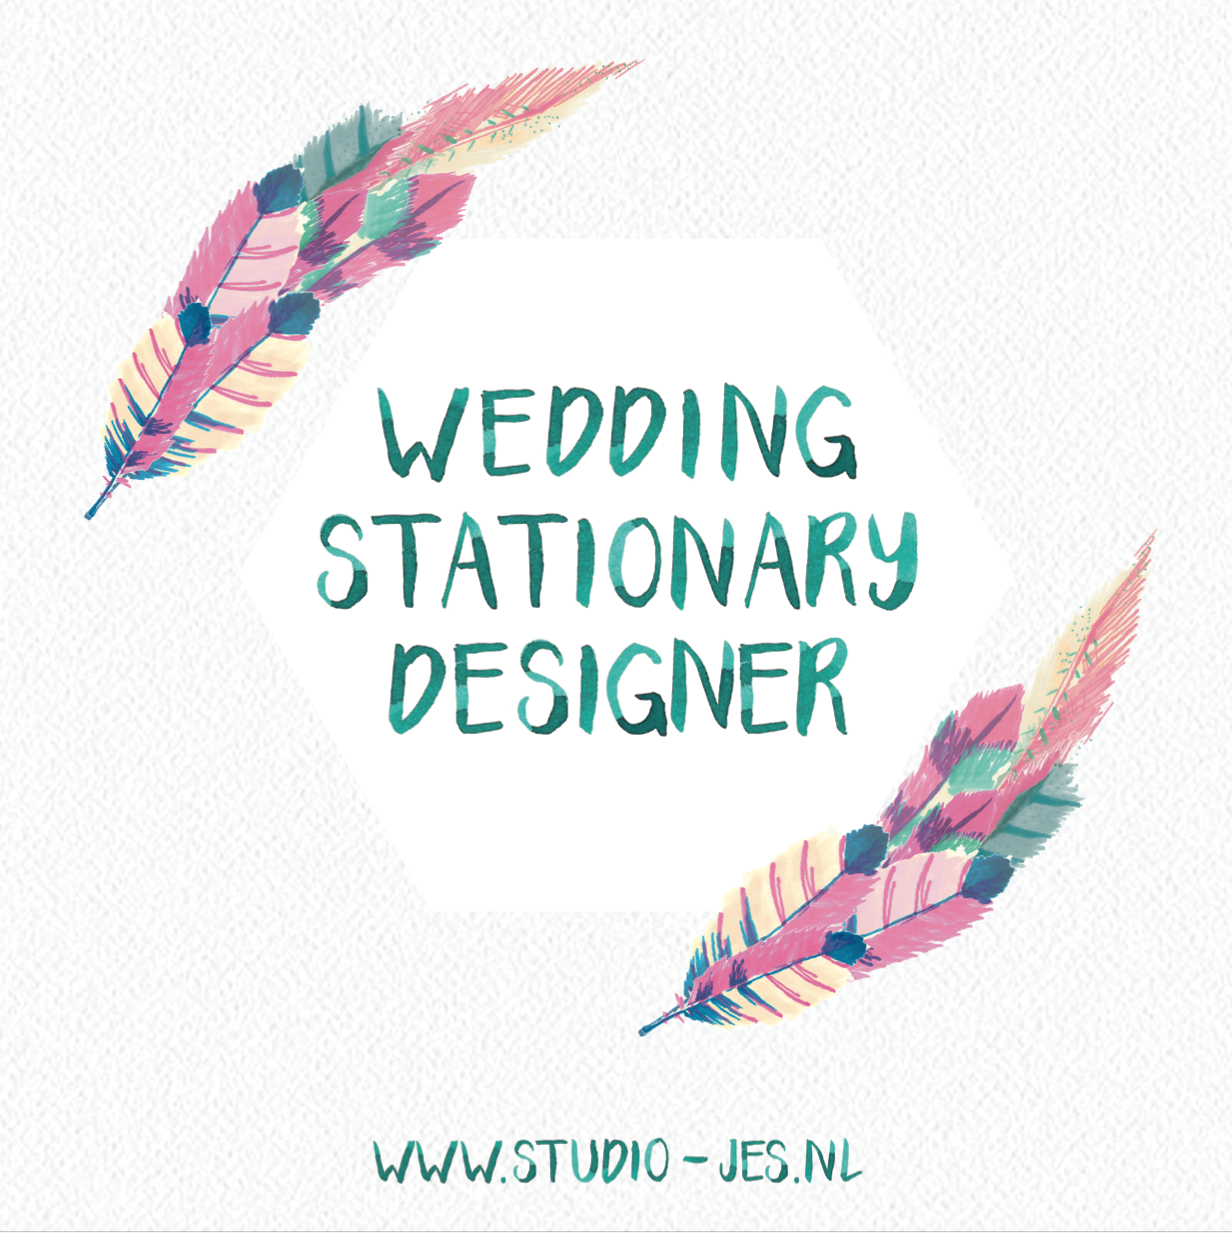 wedding stationery designer